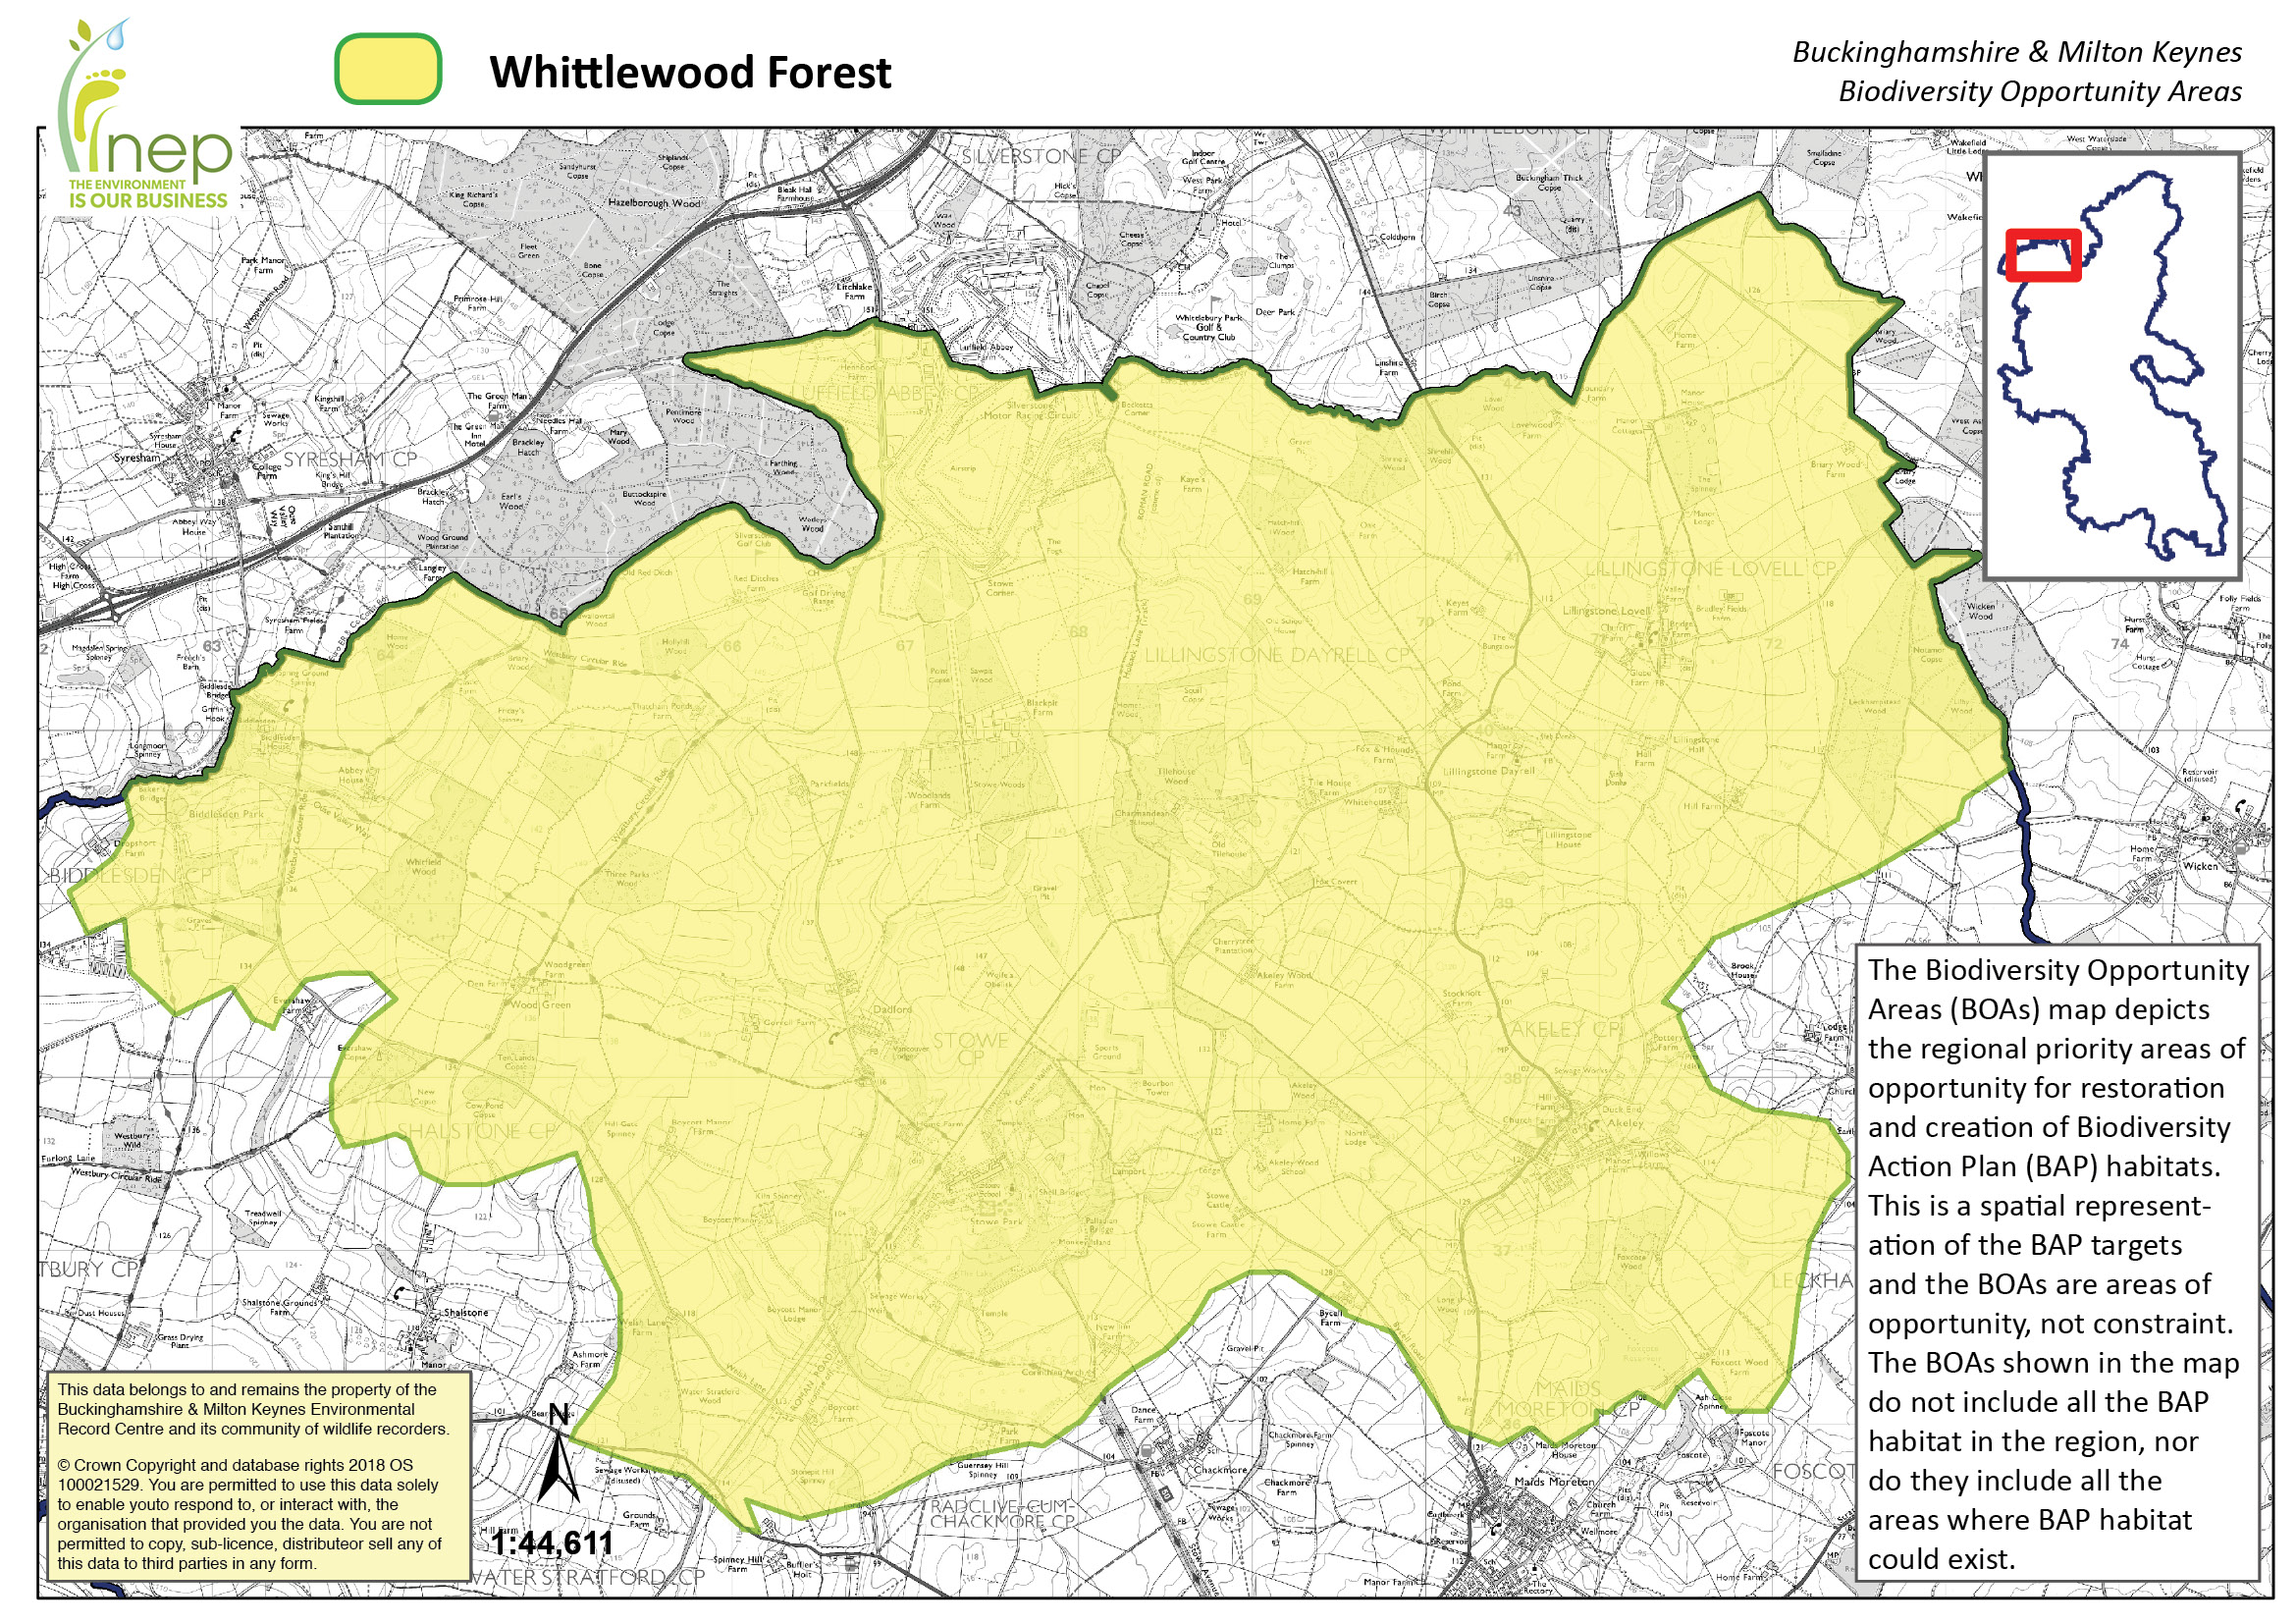 Whittlewood Forest Biodiversity Opportunity Area Buckinghamshire and Milton Keynes Natural Environment Partnership